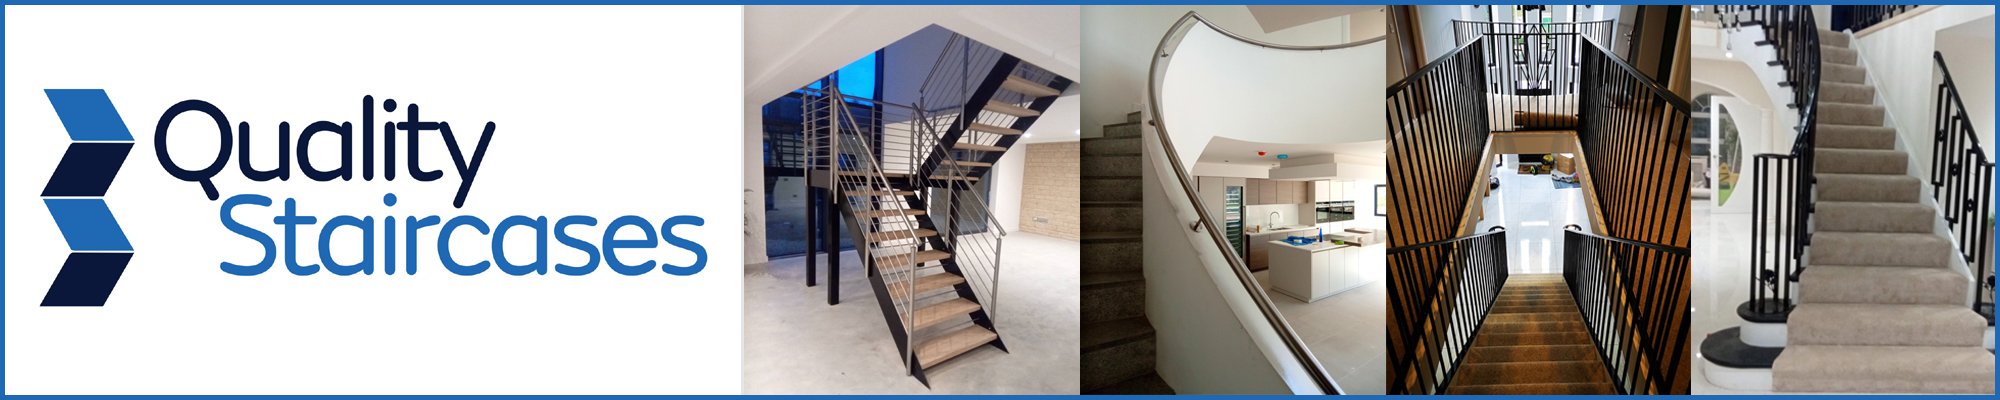 www.qualitystaircases.co.uk